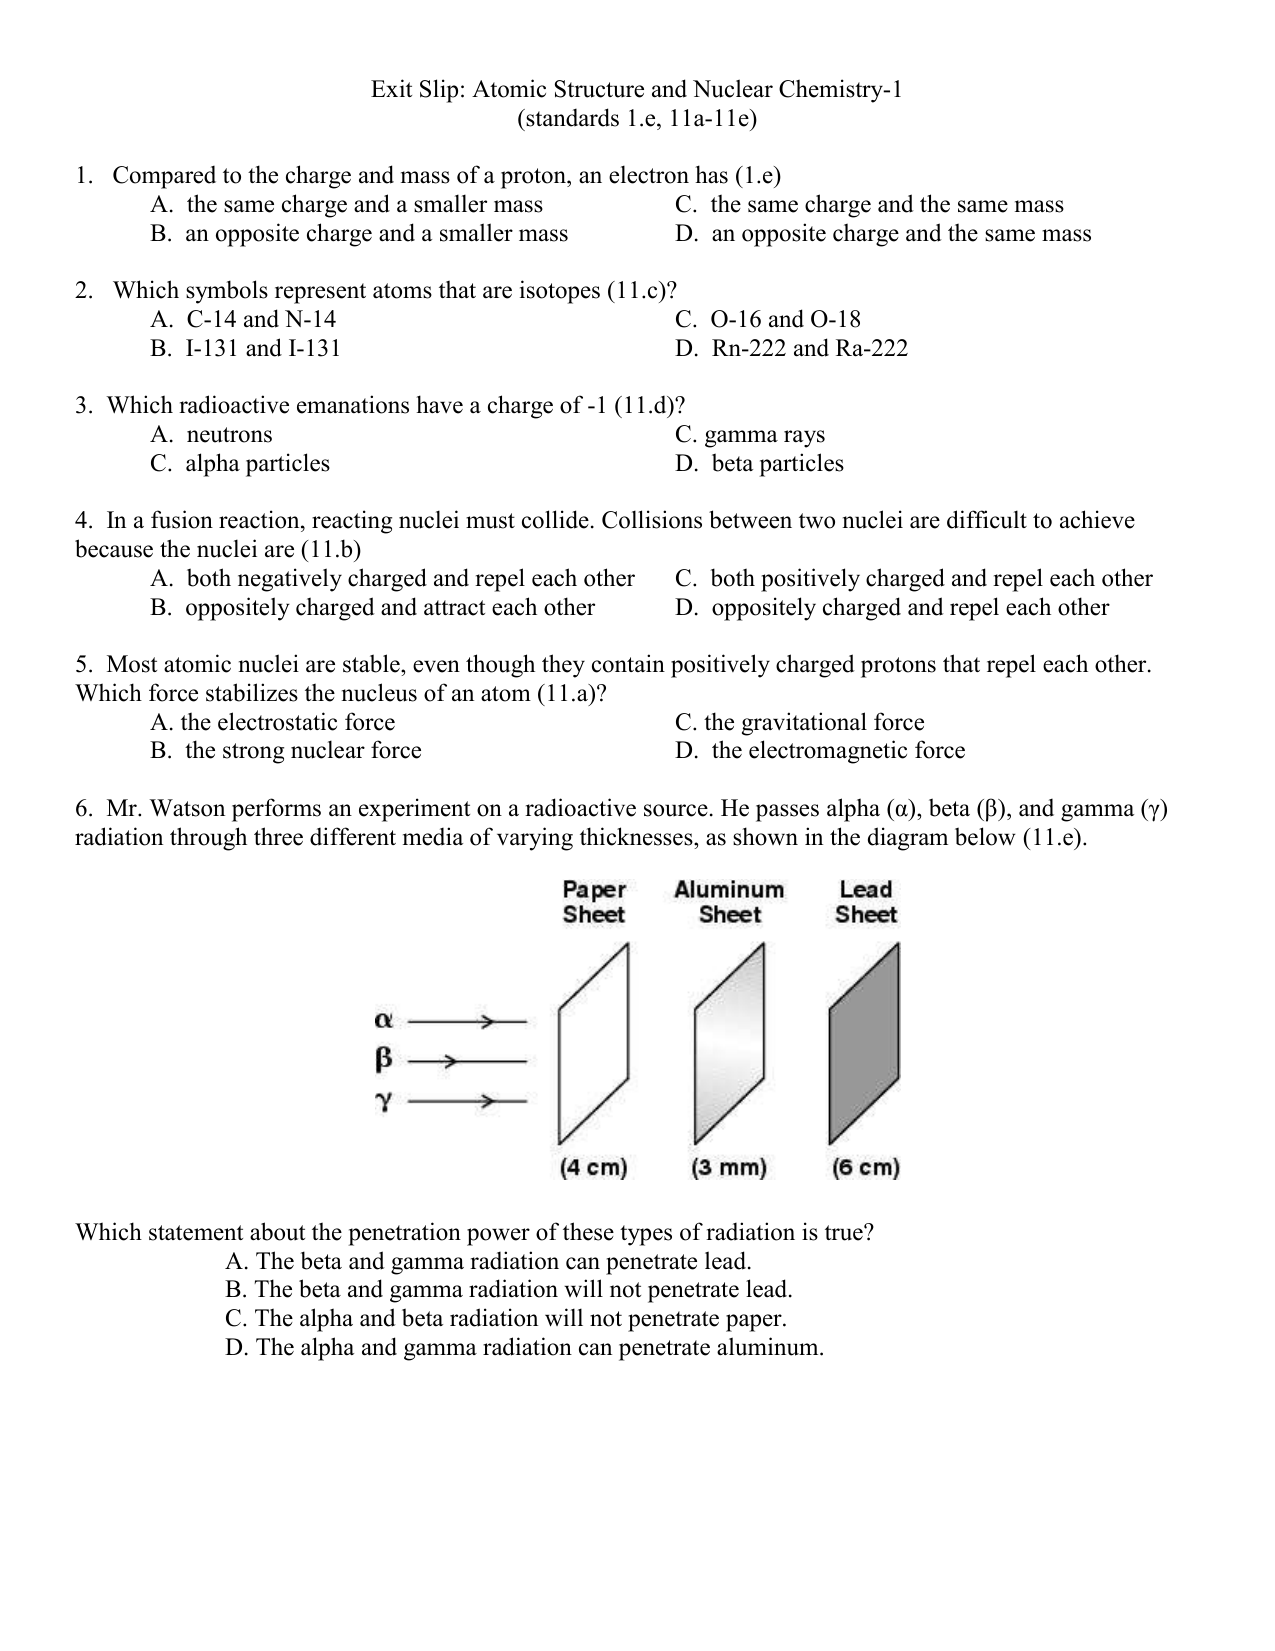 Exit slip atomic structure and nuclear chemistry 1 biocorpaavc Choice Image